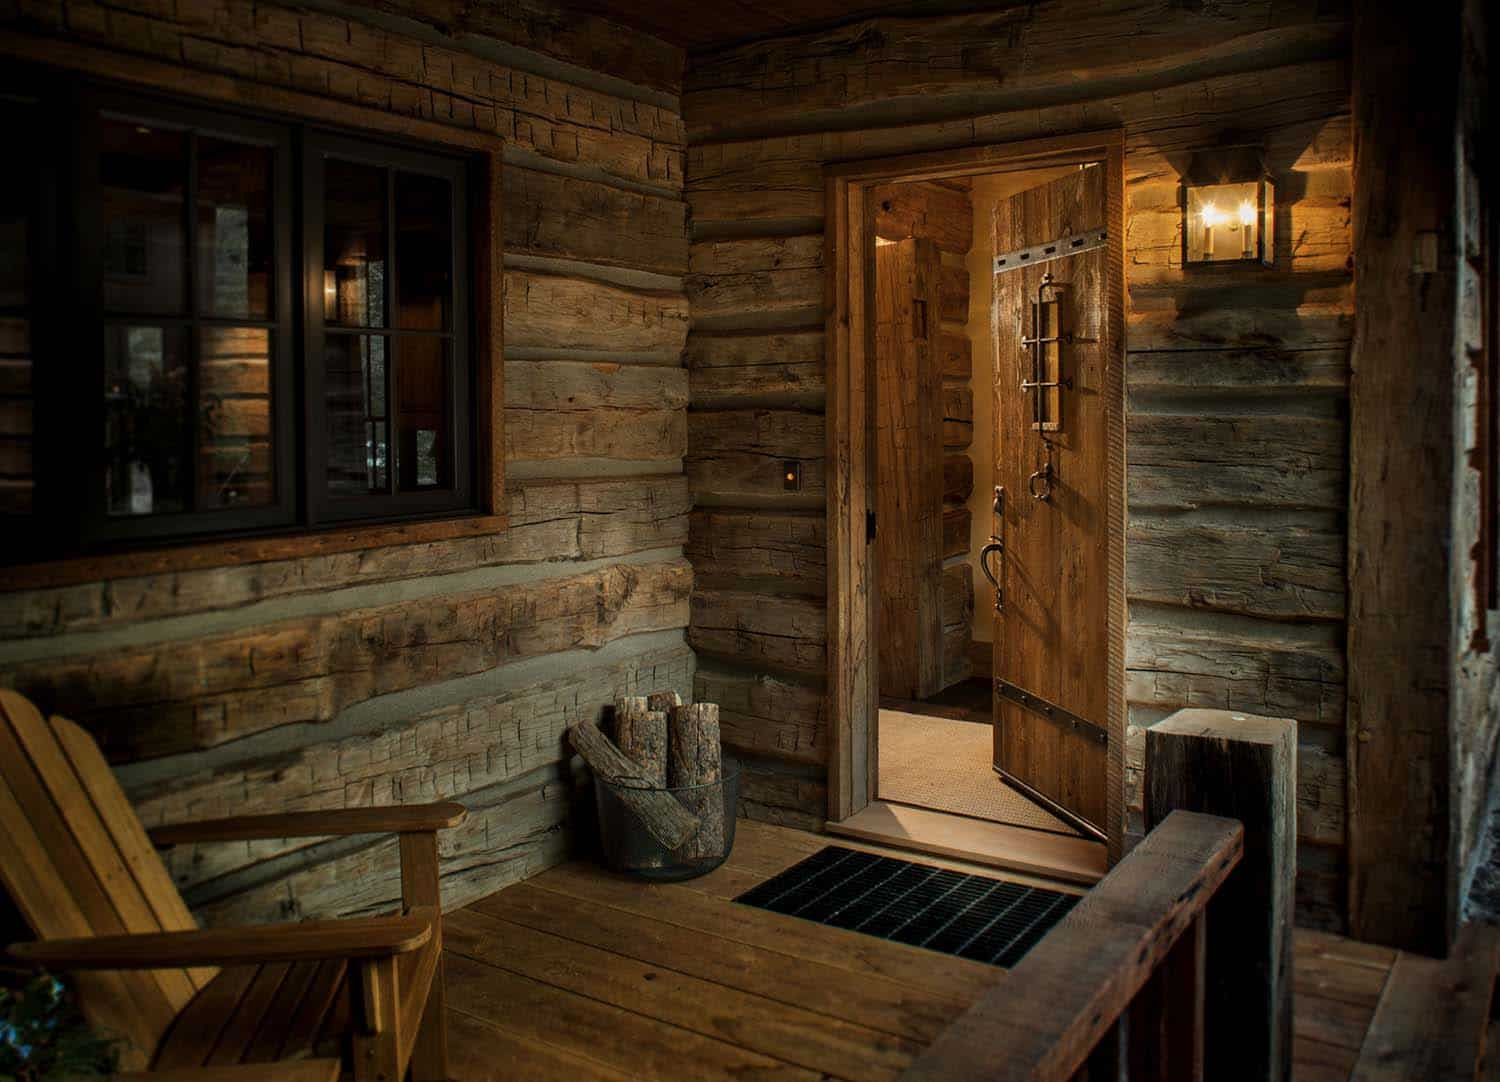 Wood River Valley Chalet-Miller Architects-03-1 Kindesign